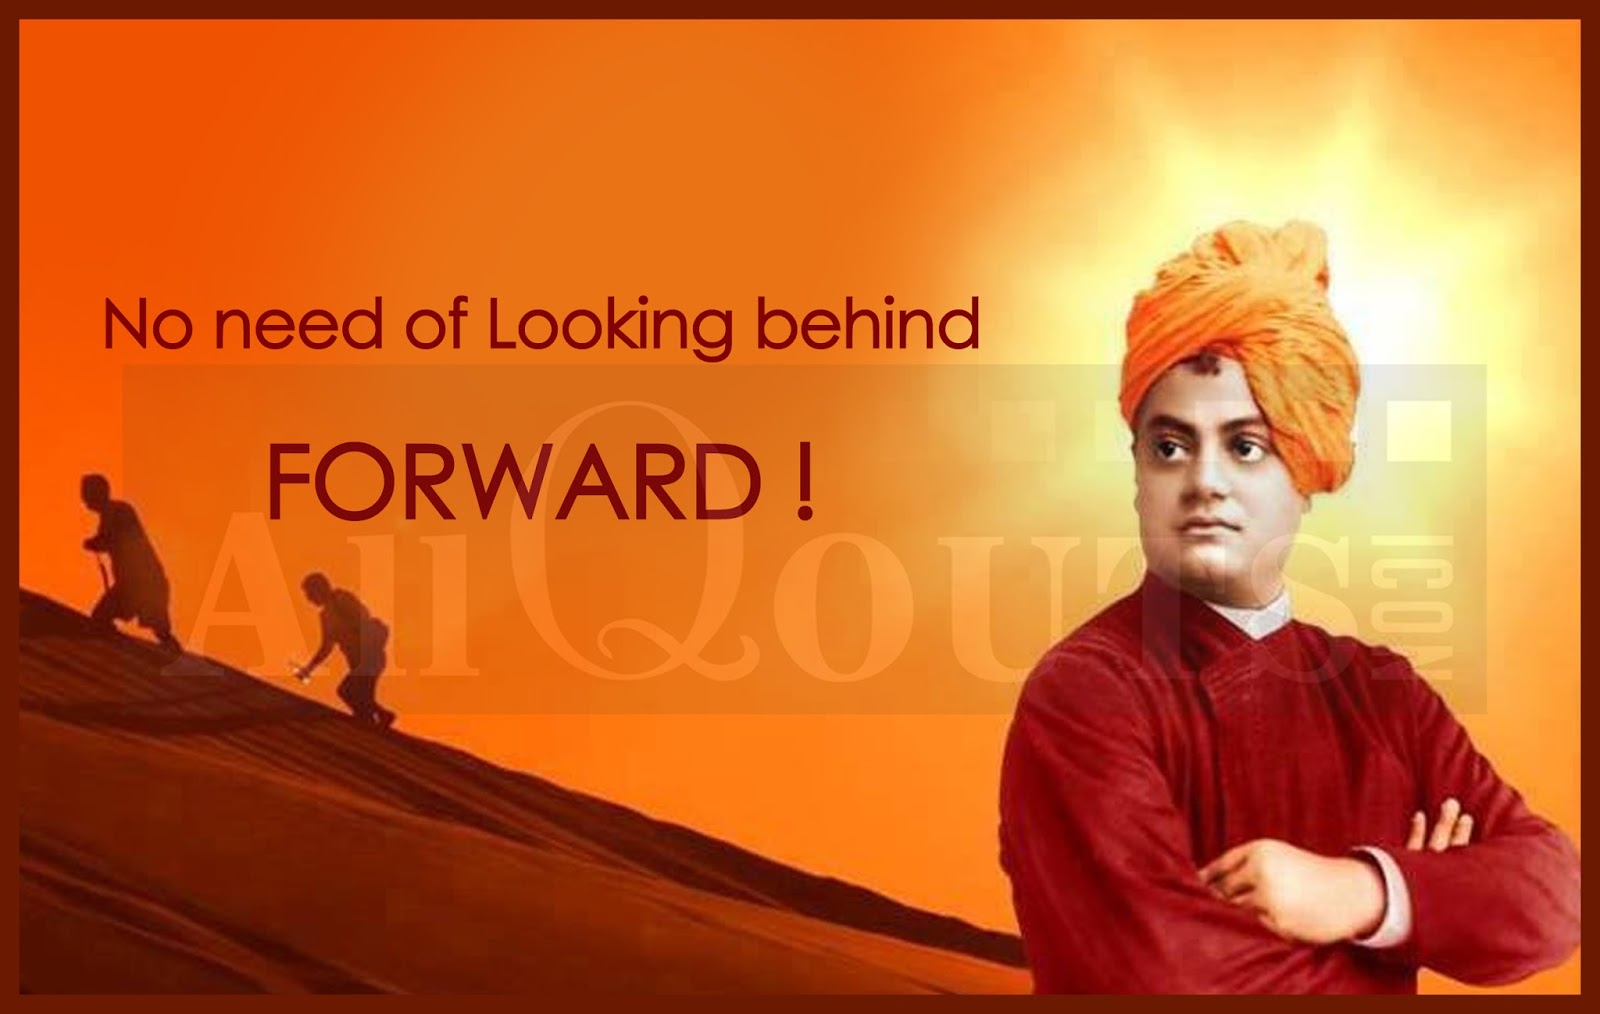 swami vivekananda quotes This app contains a famous collection of great indian monk swami vivekananda.